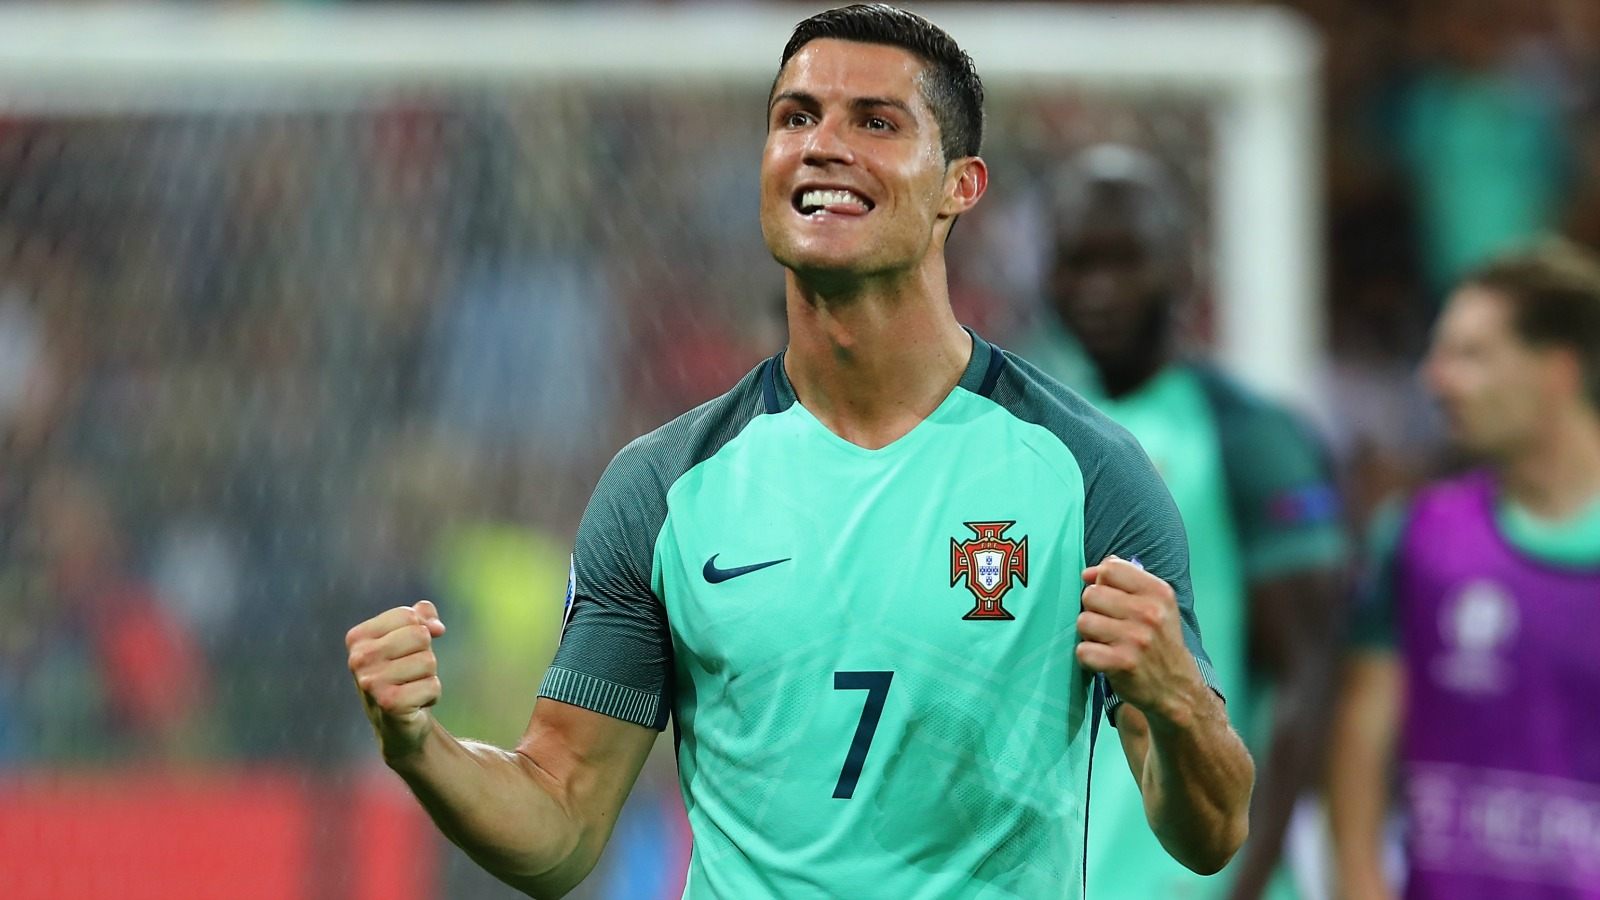 Ronaldo's Portugal following the playbook of the team that beat them in last Euro final